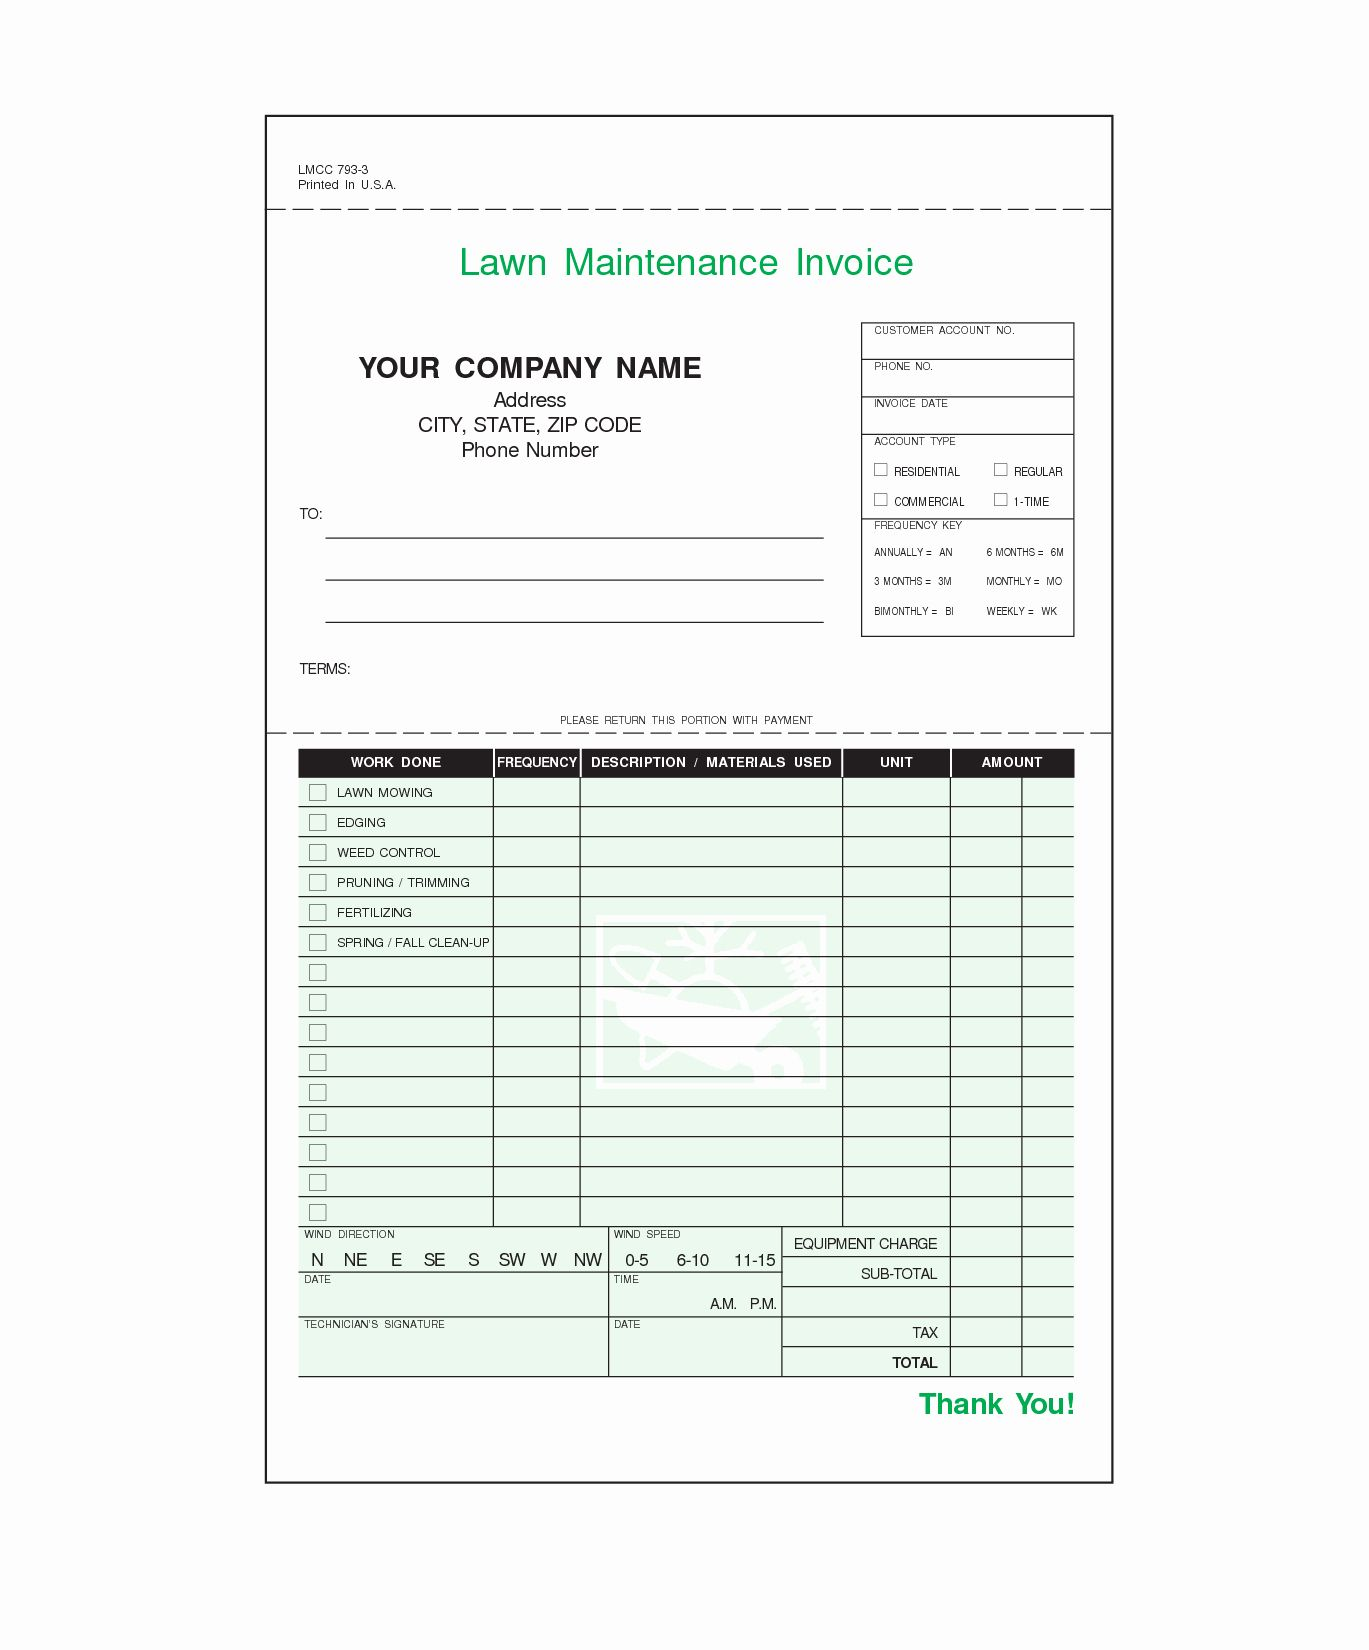 Landscaping Invoice Template Free Fresh Lawn Care Invoice Template Lawn Care Business Invoice Template Lawn Maintenance Lawn care invoice template pdf